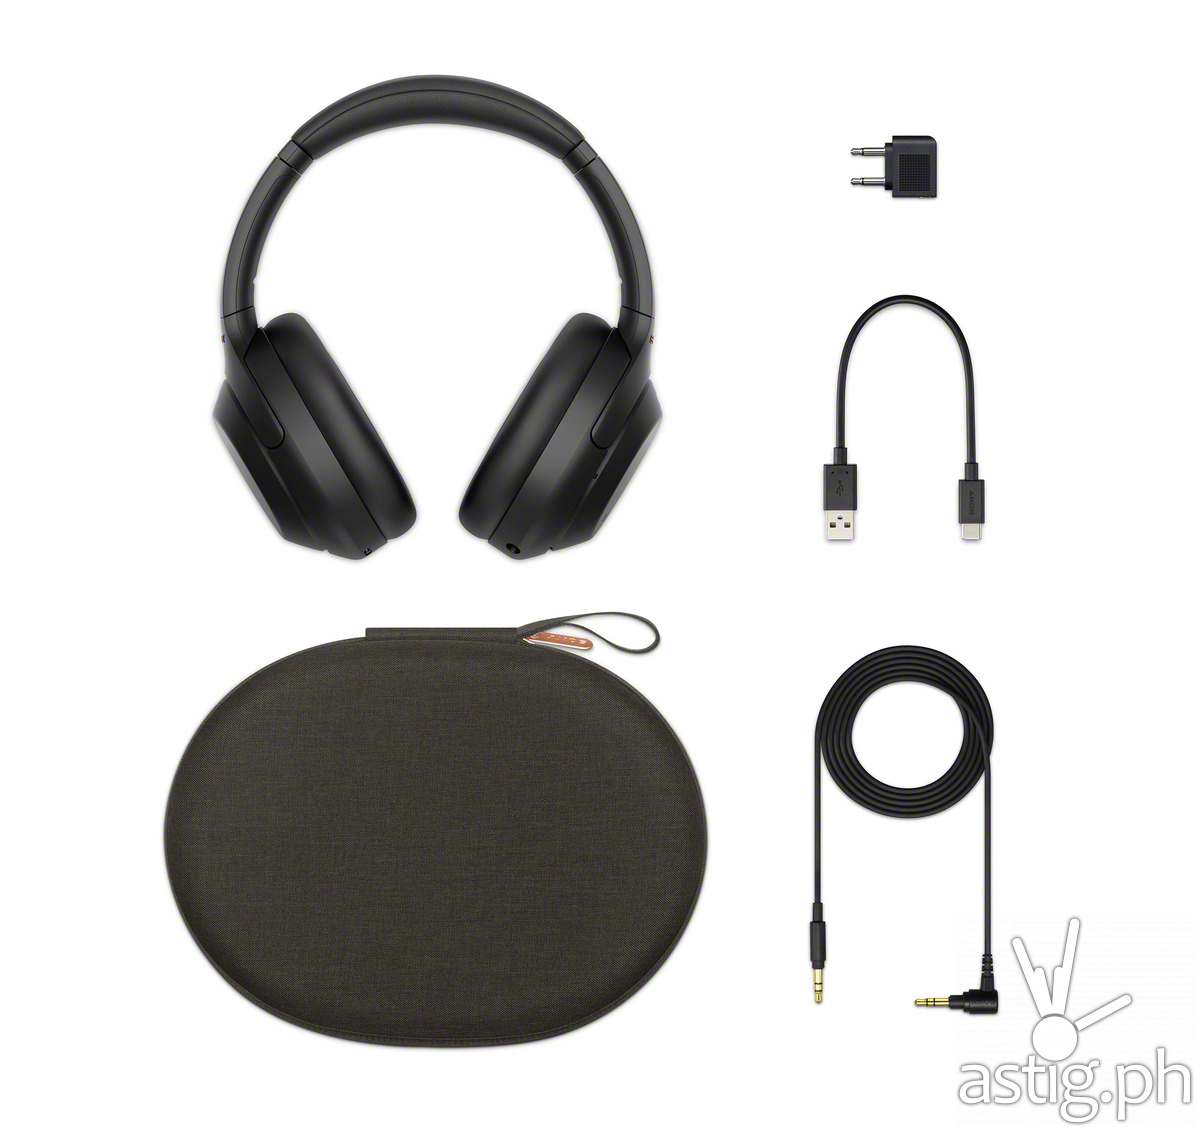 Sony WH-1000XM4 package